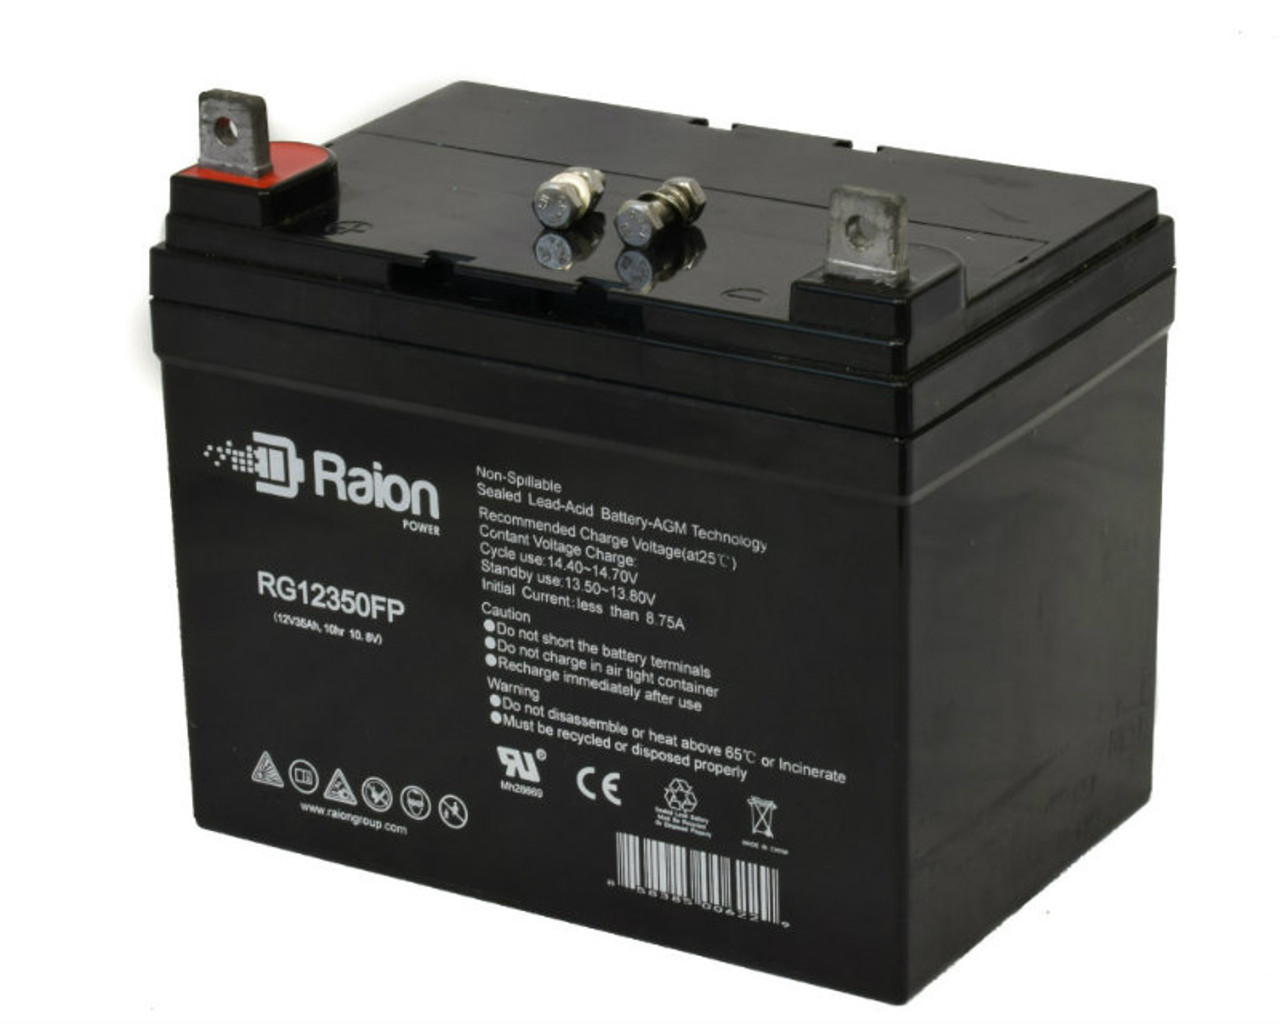 RG12350FP Sealed Lead Acid Battery Pack For Stand-Aid Power Lift Mobility Scooter